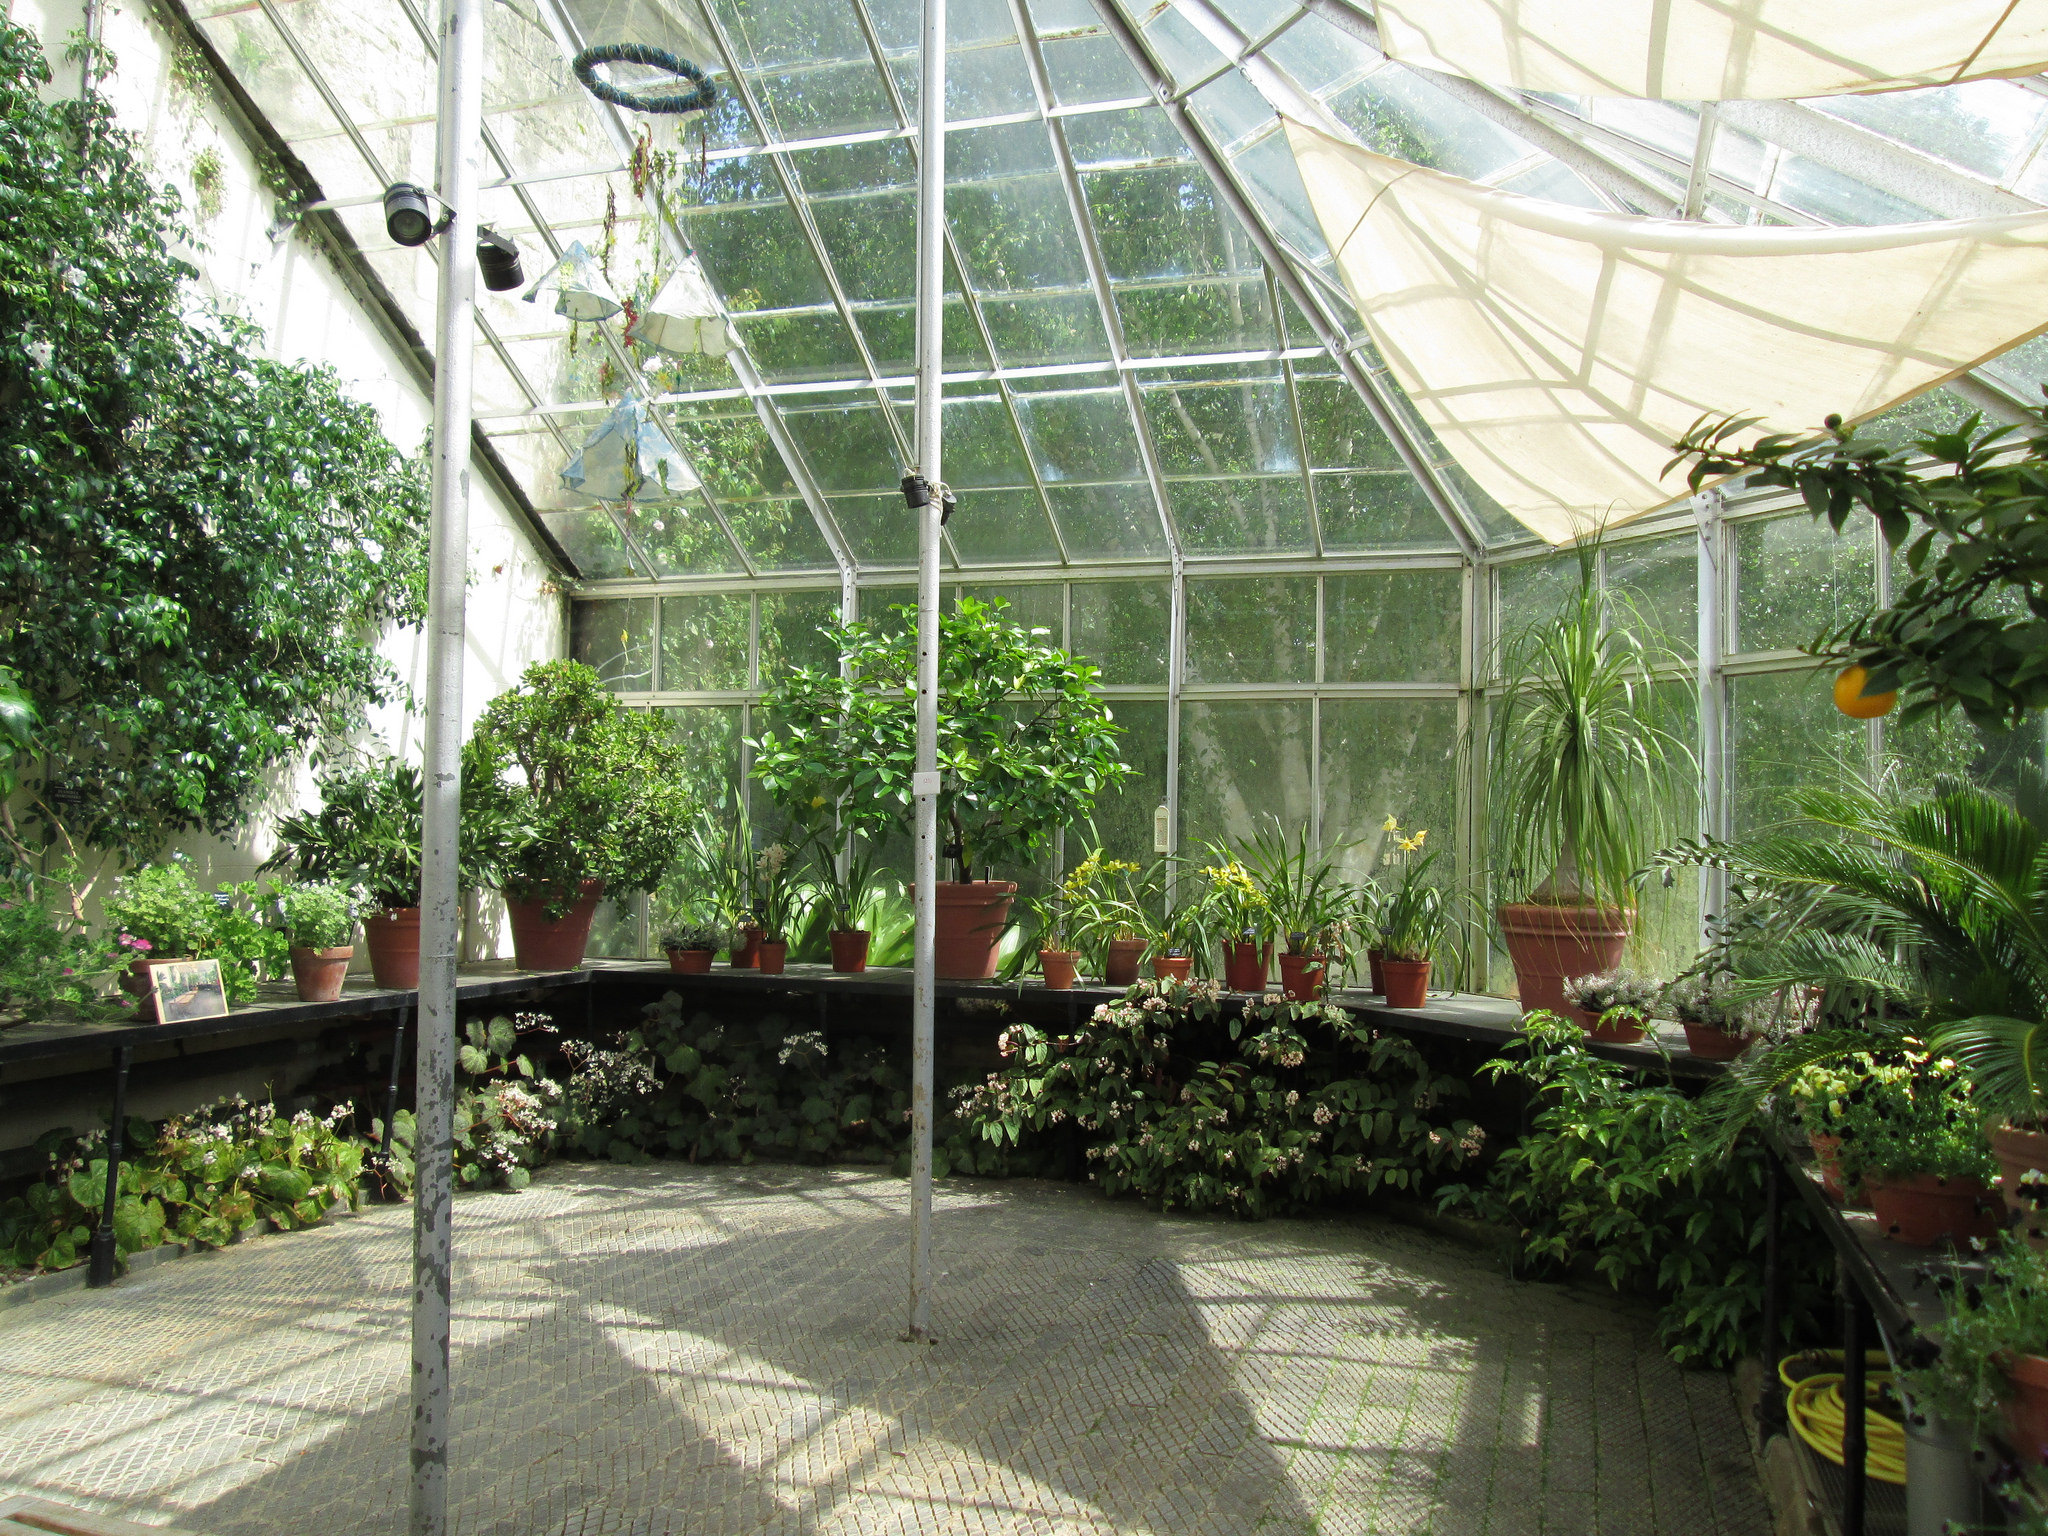 University of Oxford Botanic Garden - Botanic Garden in ...